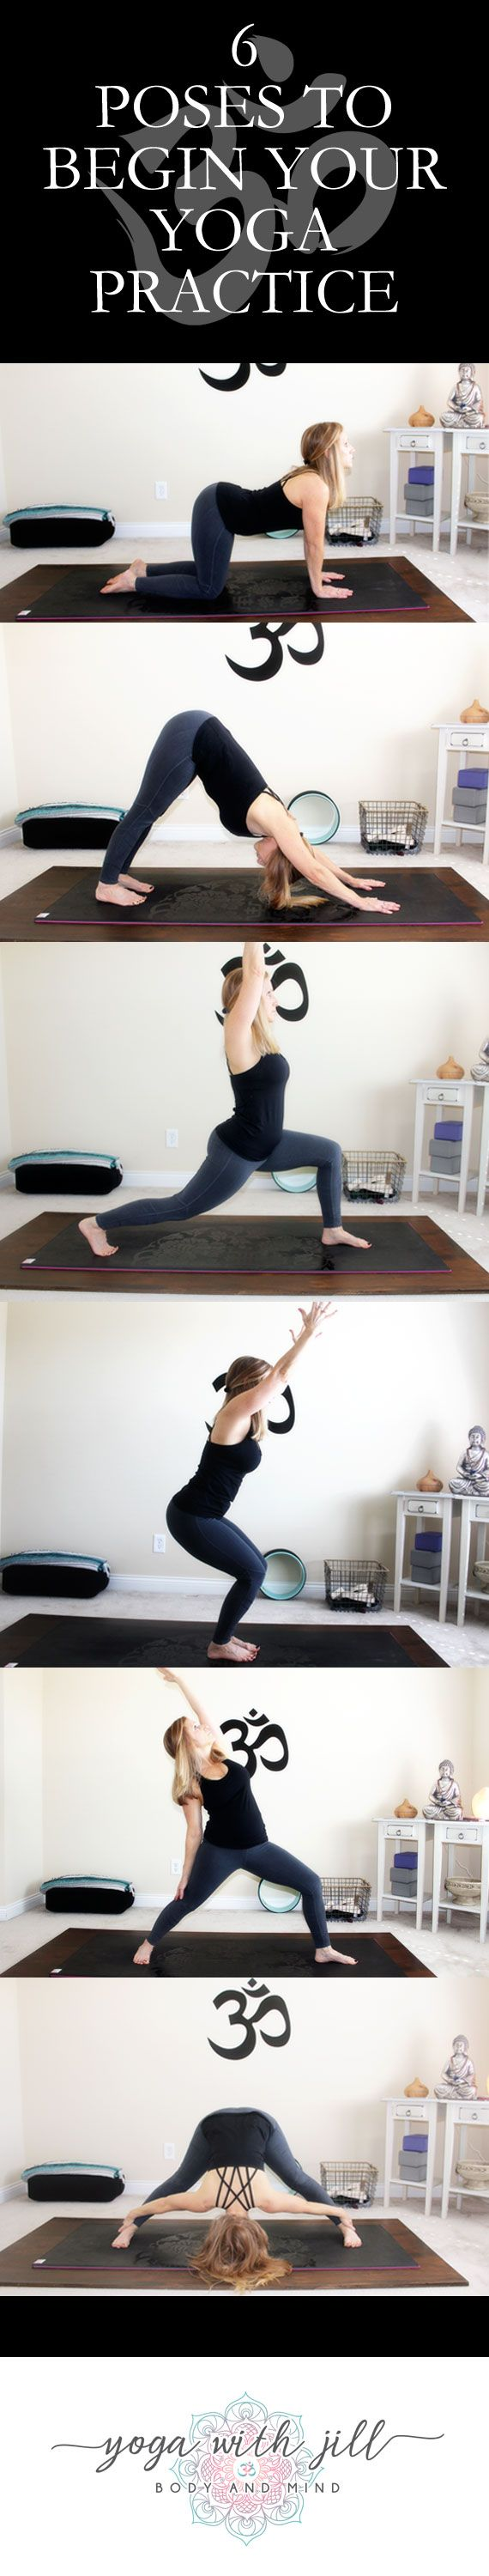 Ignite your best life through yoga, on and off the mat. This is about all of us,...